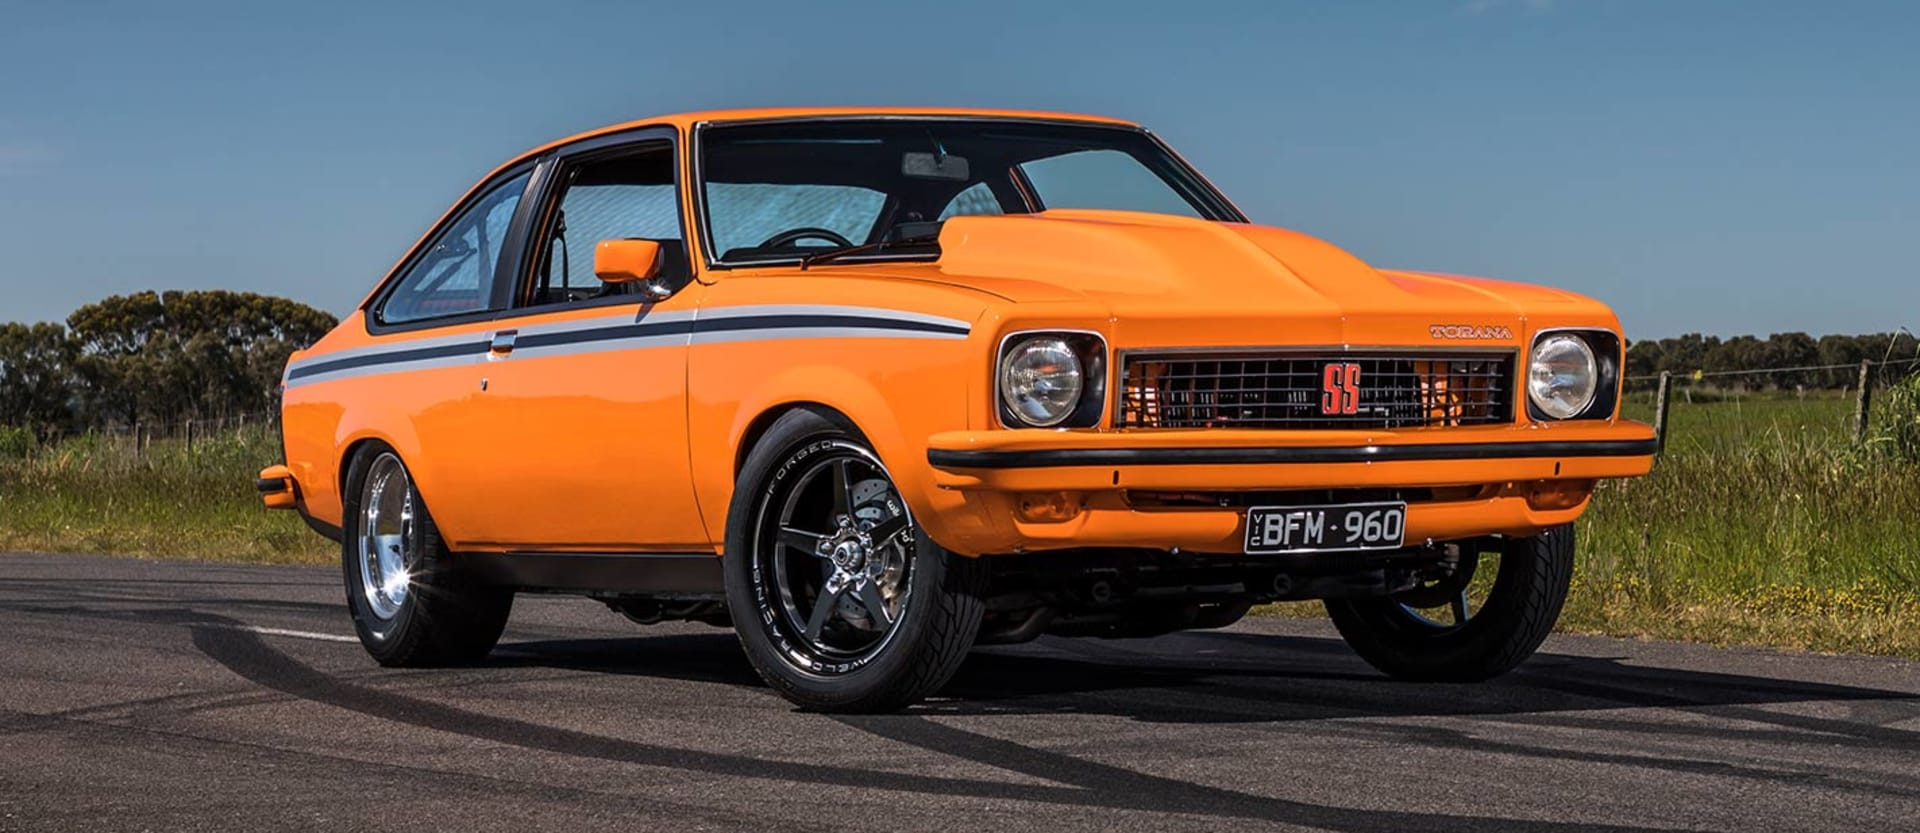 Holden Lx Torana Hatch 1422 Jpg